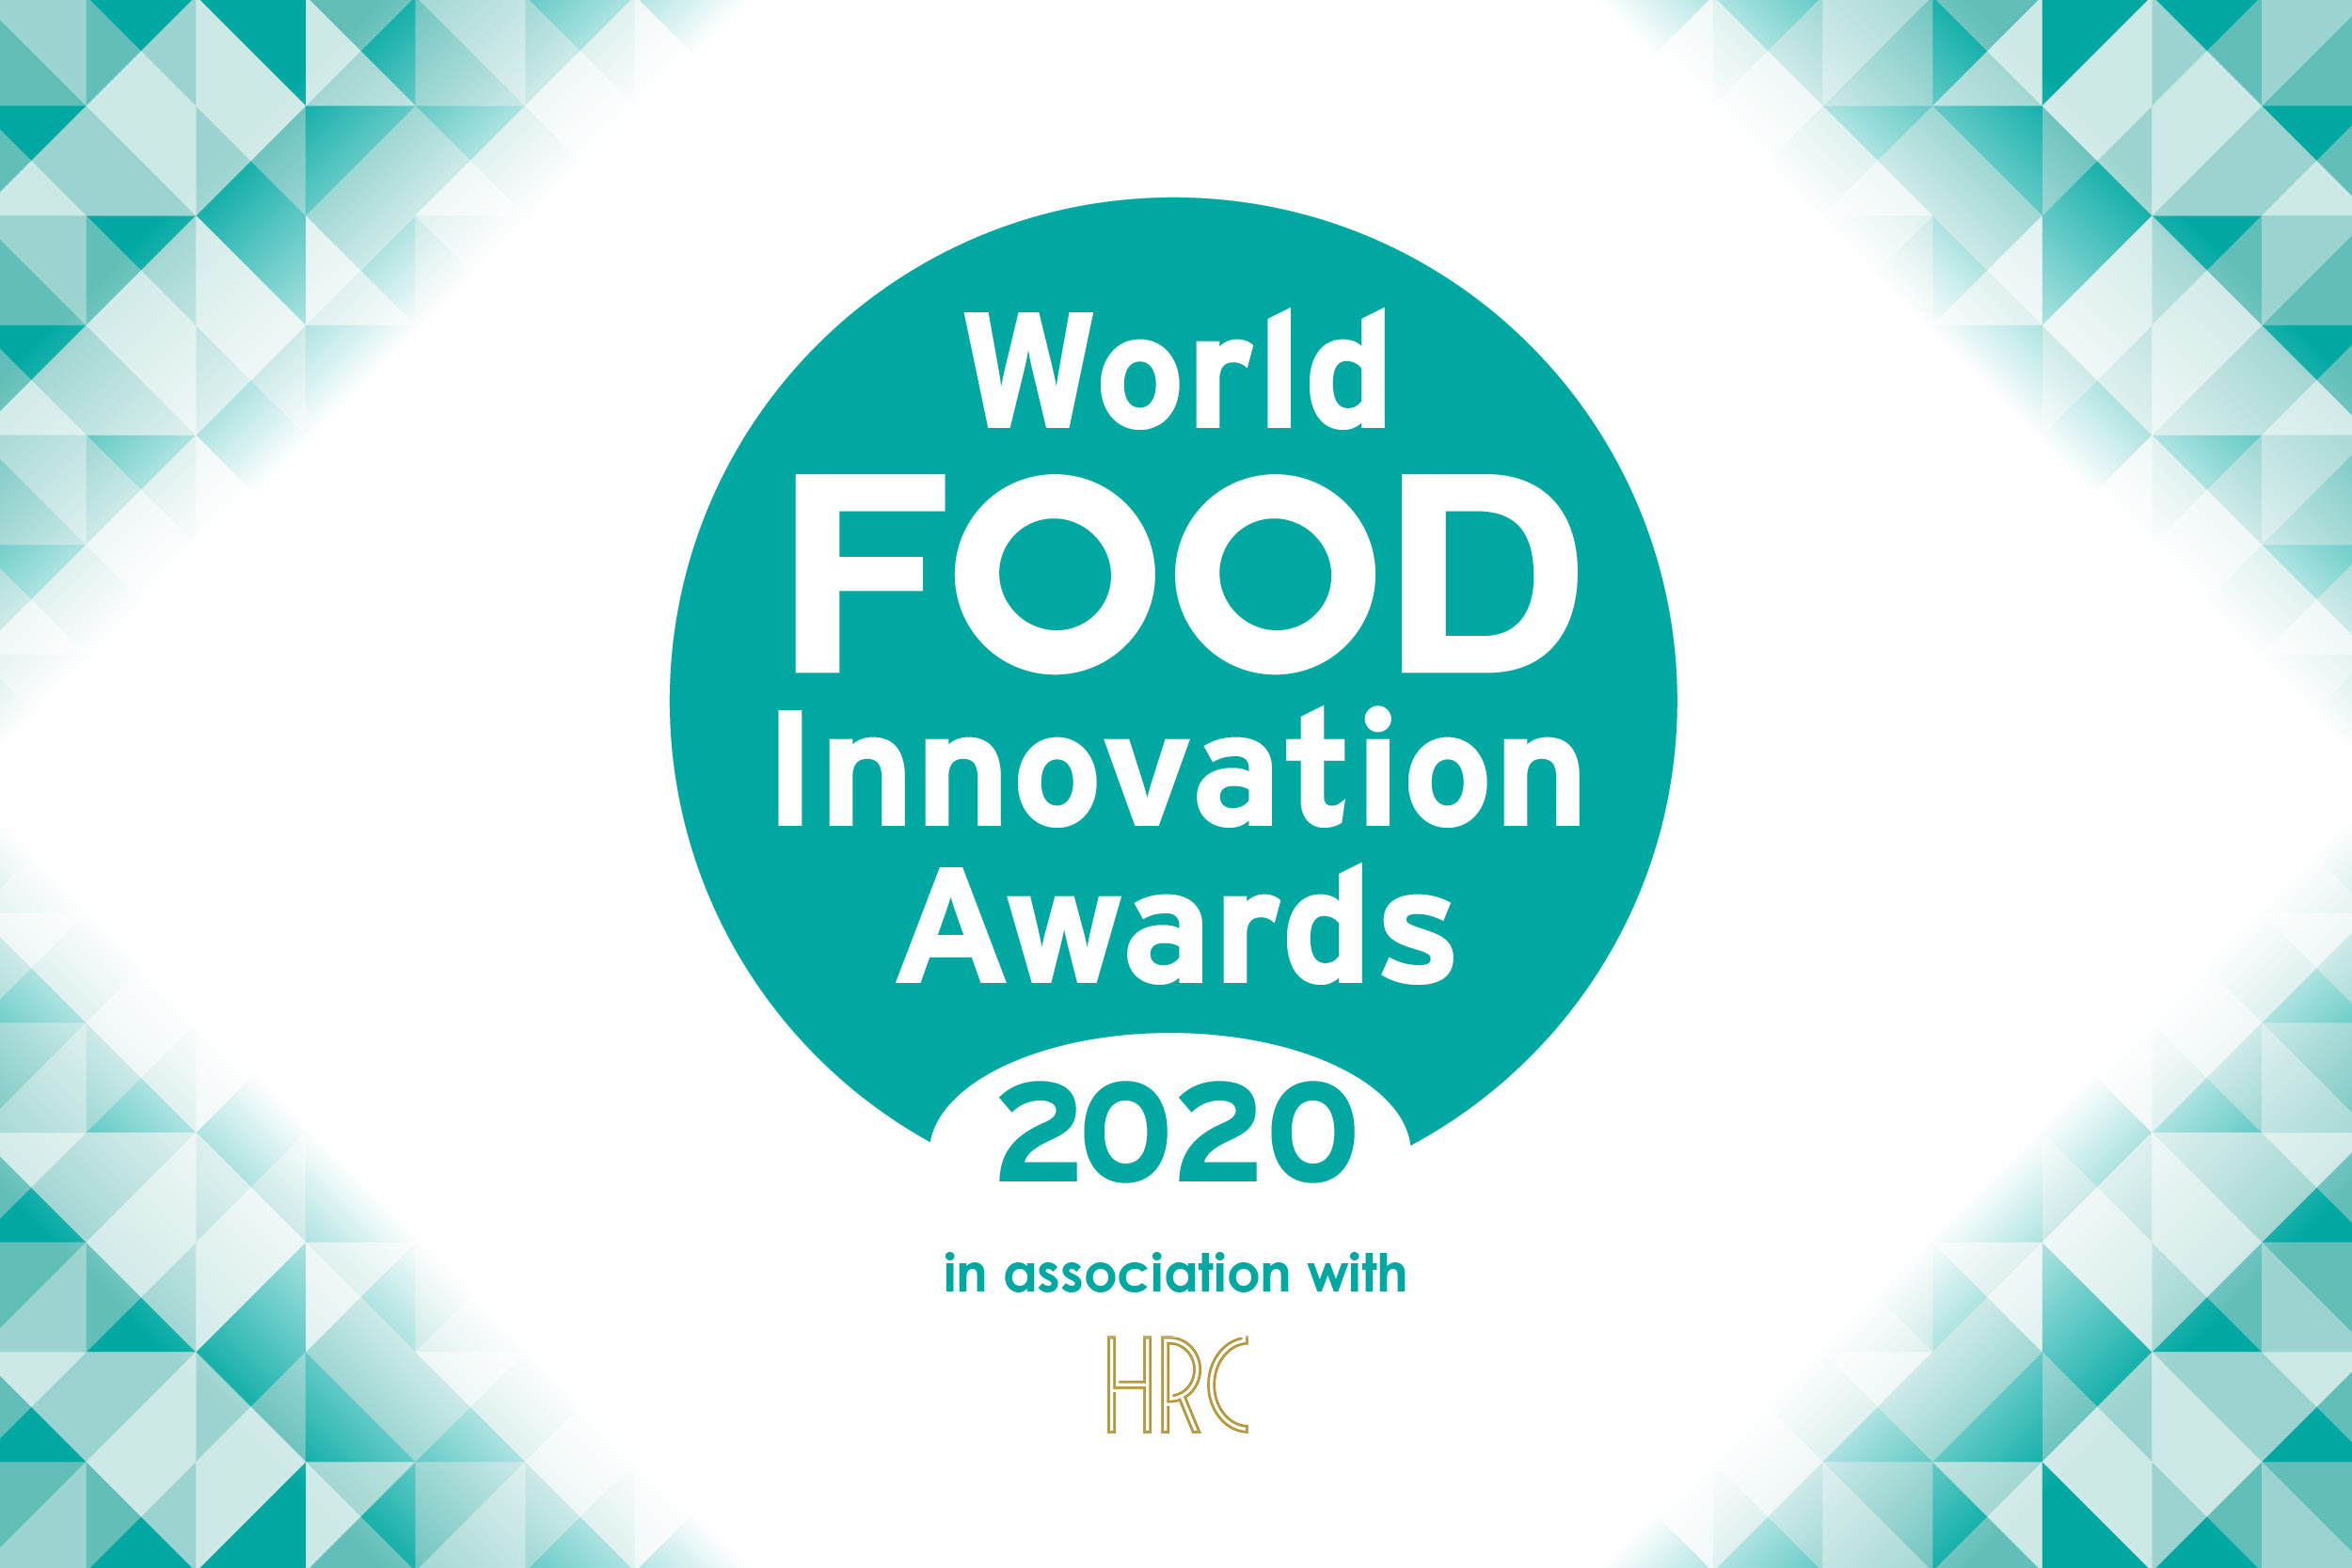 World Food Innovation Awards 2020: judges announced